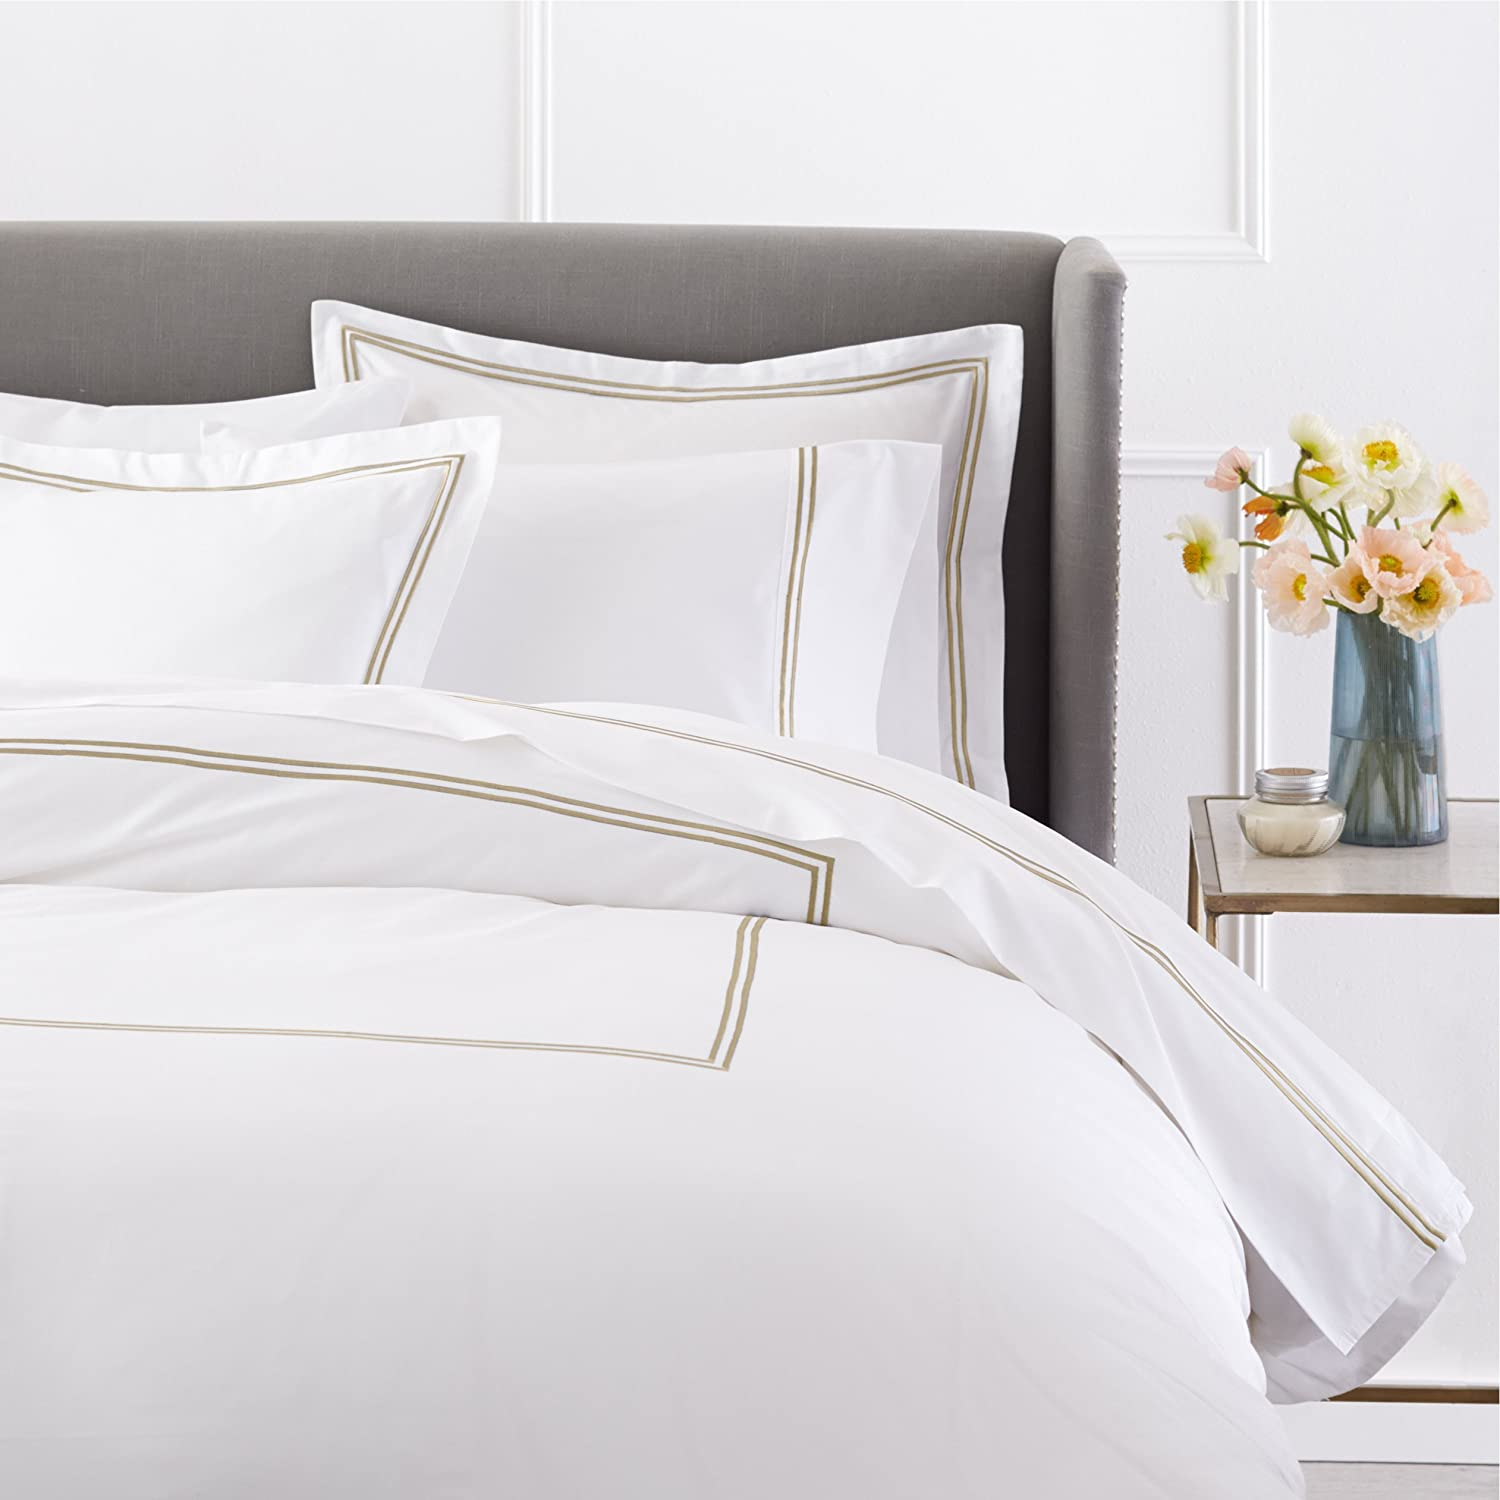 Brand – Pinzon 400 Thread Count Egyptian Cotton Sateen Hotel Stitch Duvet Cover - Full or Queen, Taupe: Home & Kitchen